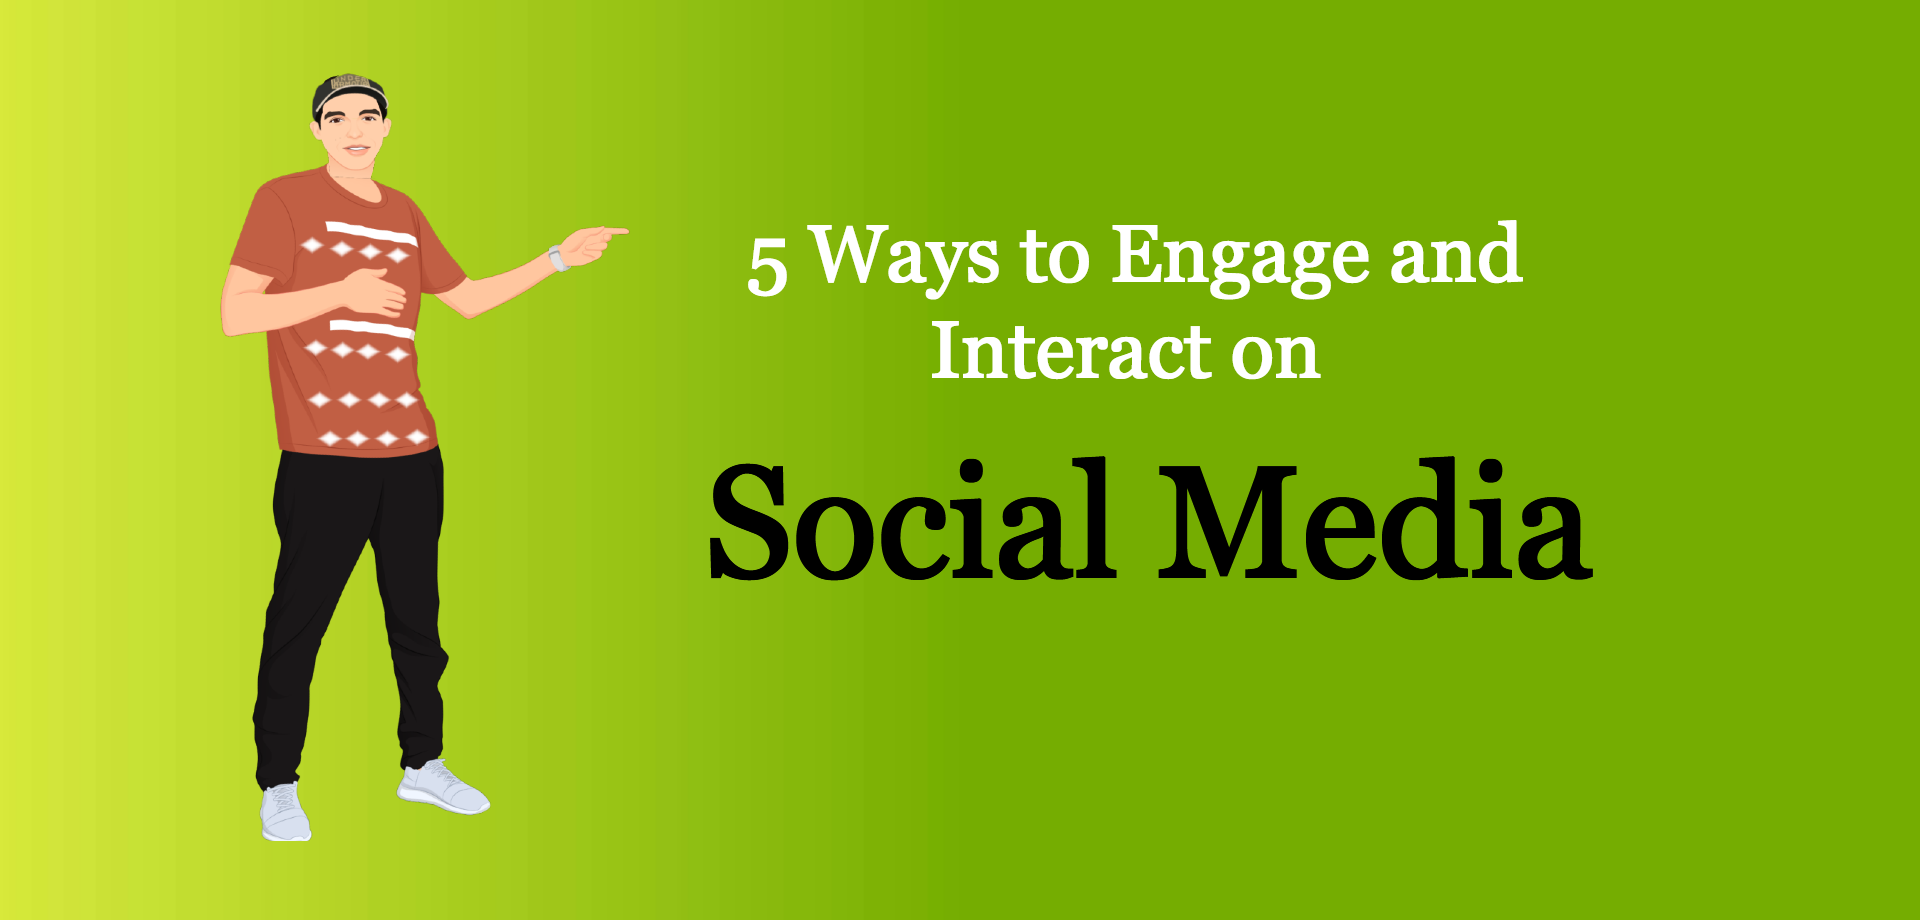 5 ways to engage and interact on social media